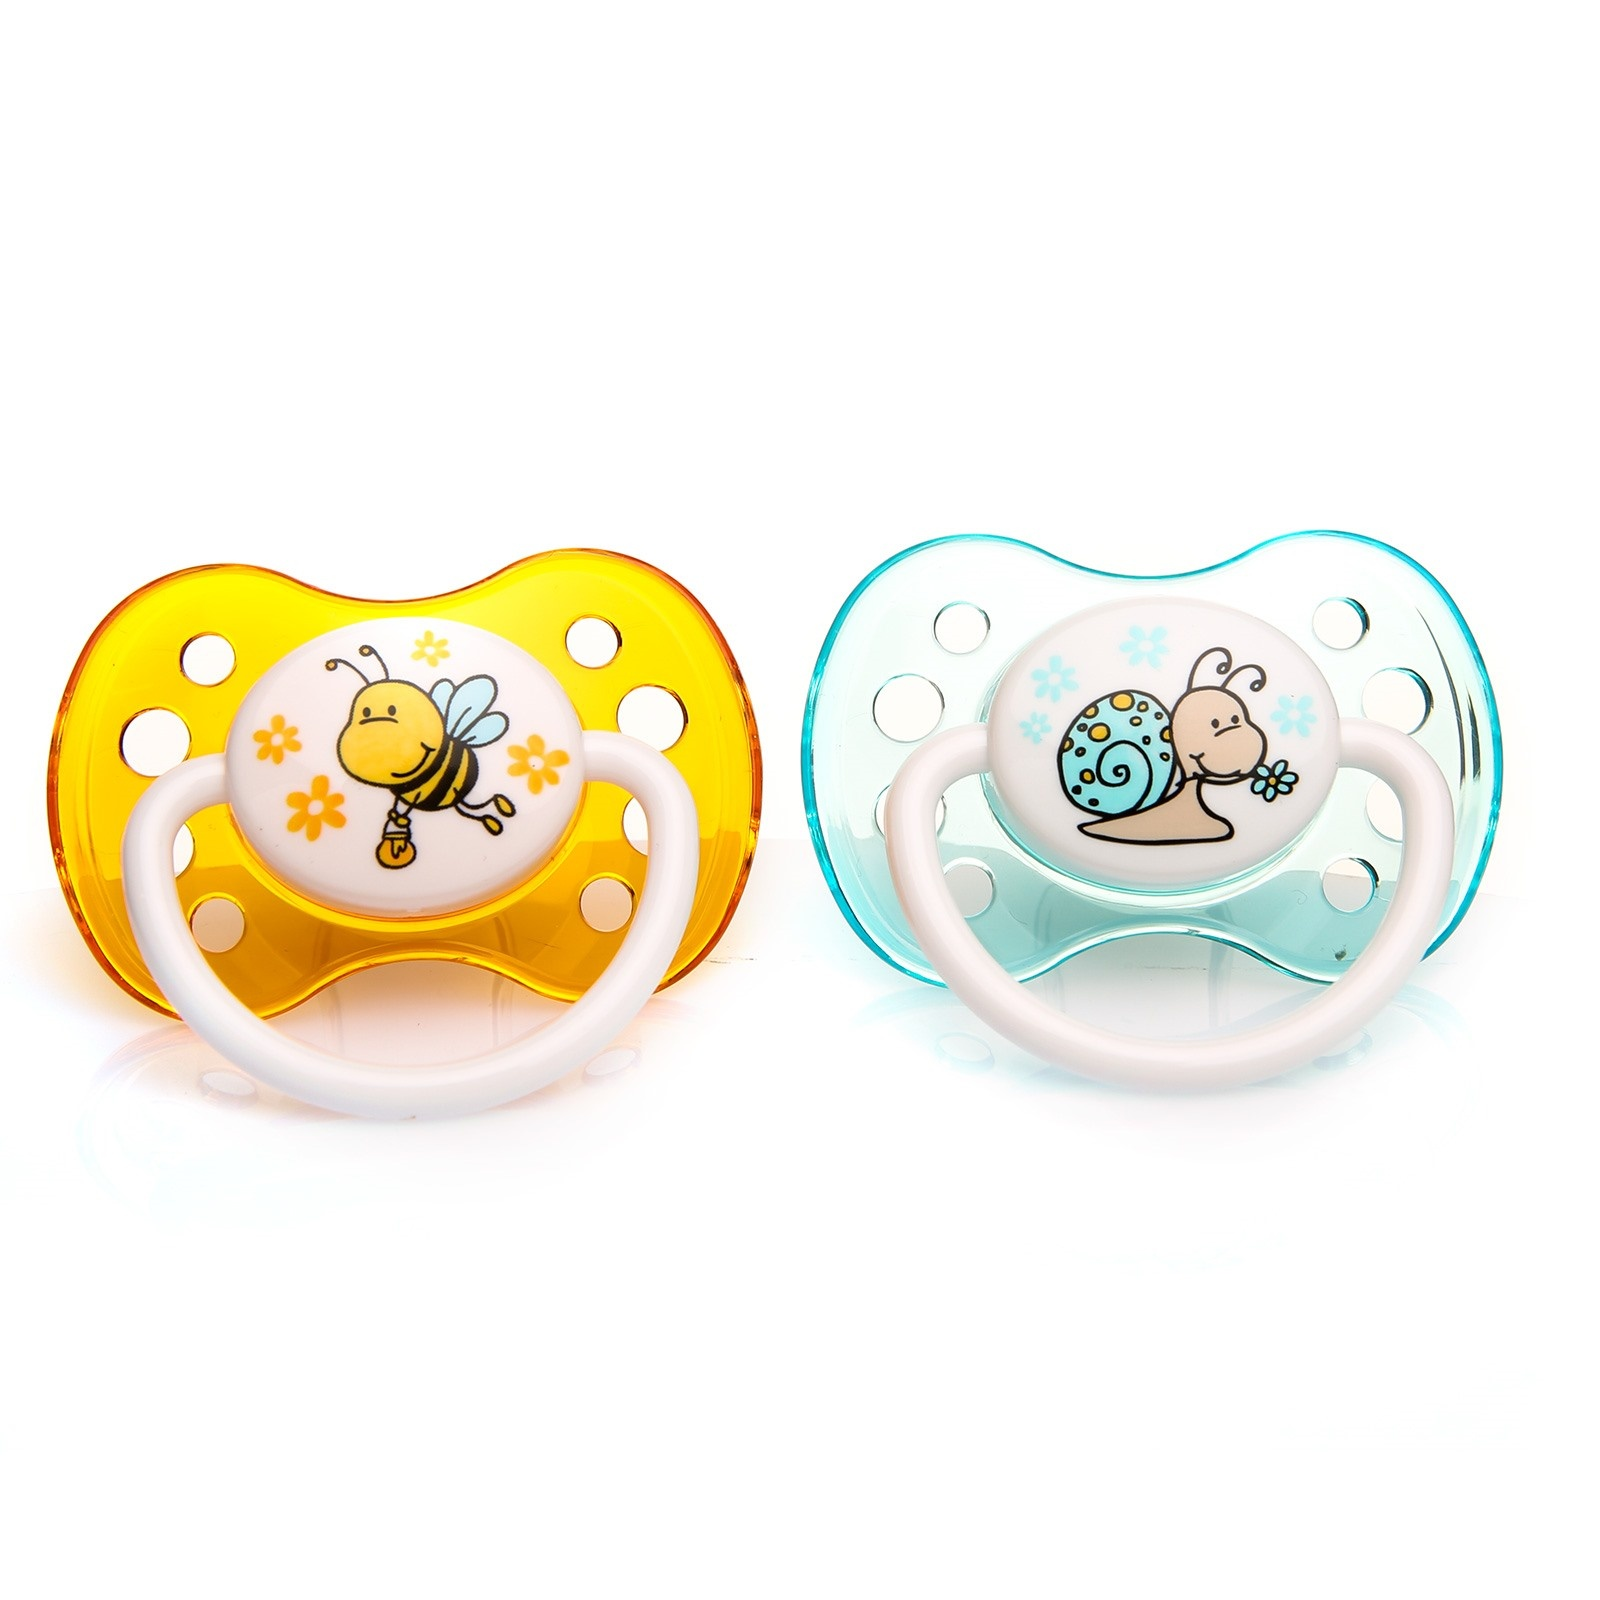 Ebebek Baby&plus Silicone Soothers 2 Pcs 0-6 Months